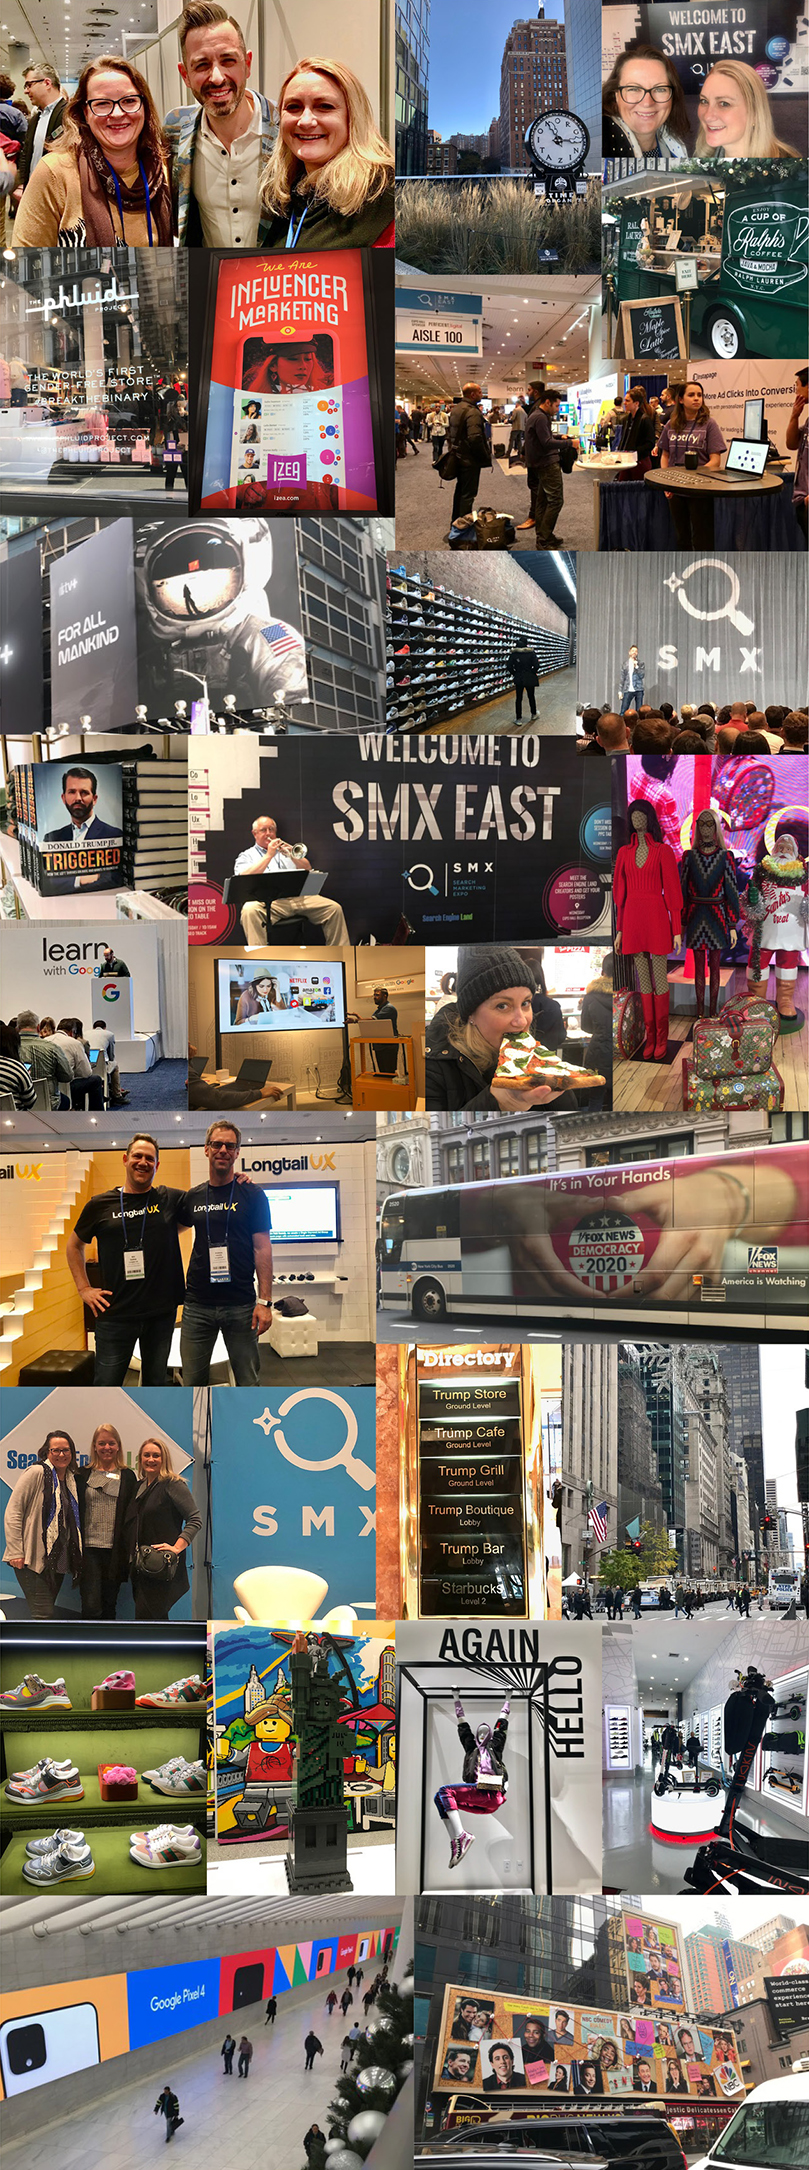 Insights into the latest Search Marketing trends and feeling the vibe at SMX East 2019 in New York